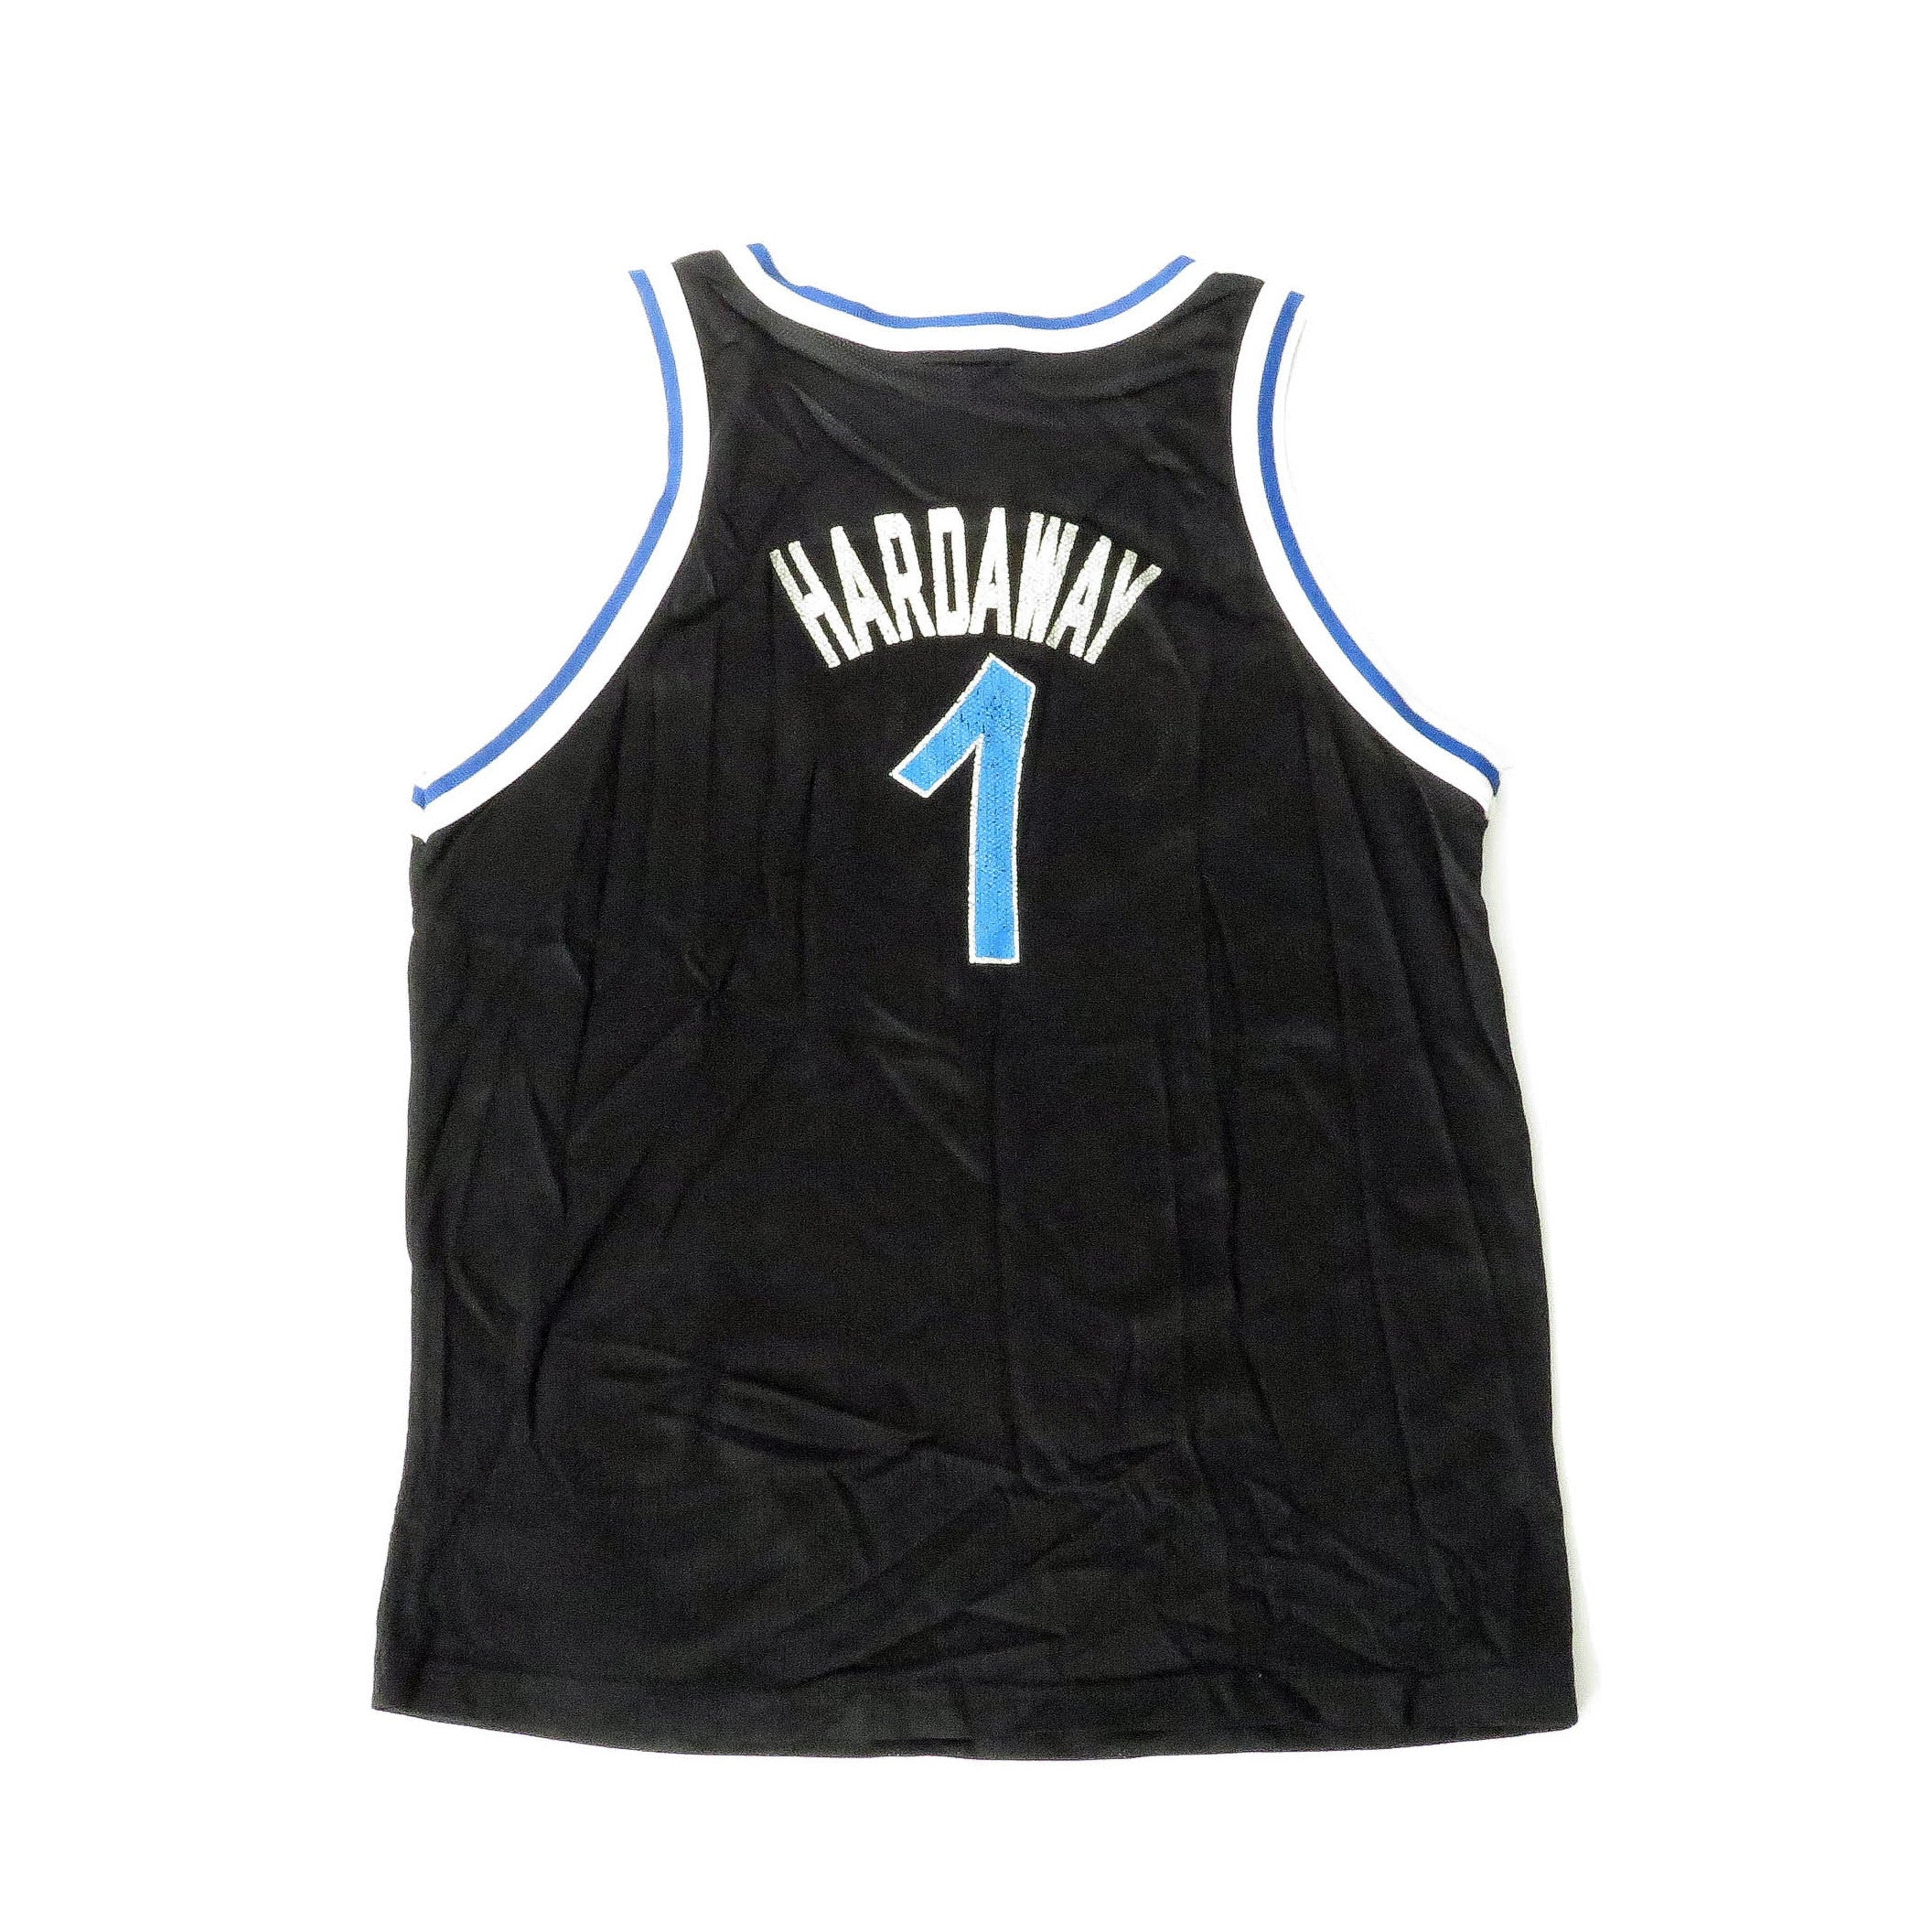 Vintage Penny Hardaway Orlando Magic Champion Jersey Sz 18-20